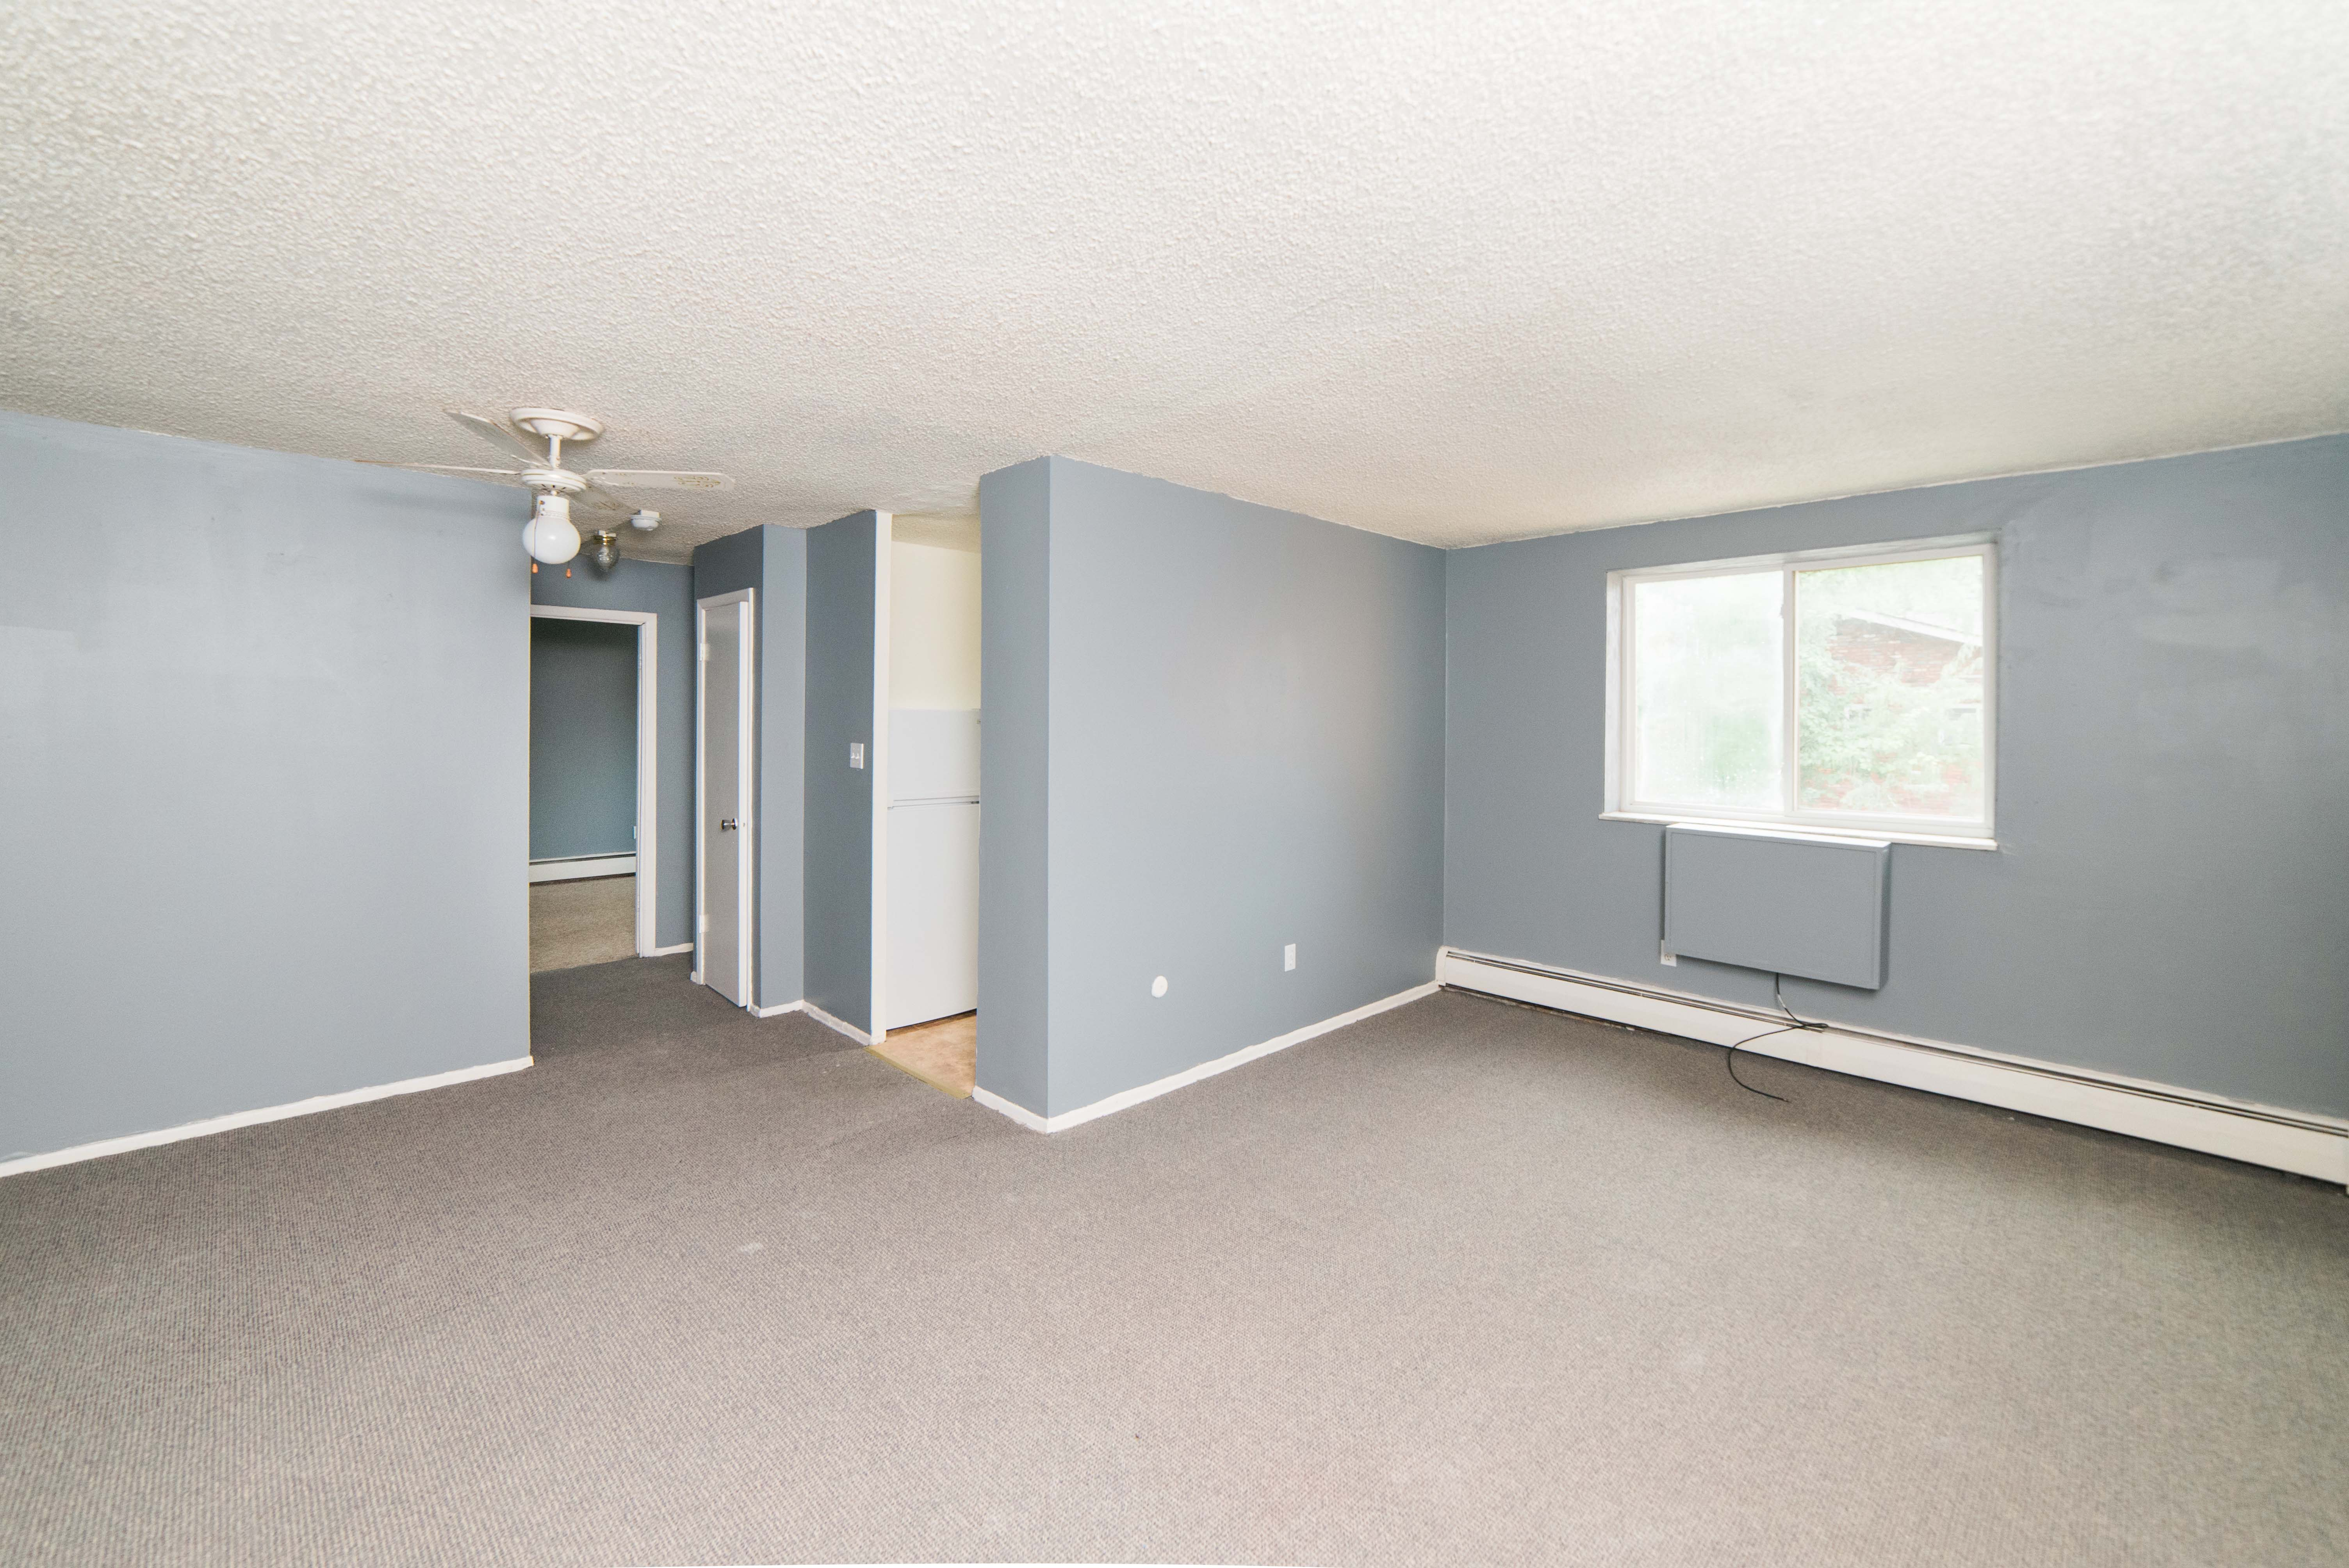 Pet Friendly apartments in Moon Township Colonial Commons Apartments managed by Birgo Realty